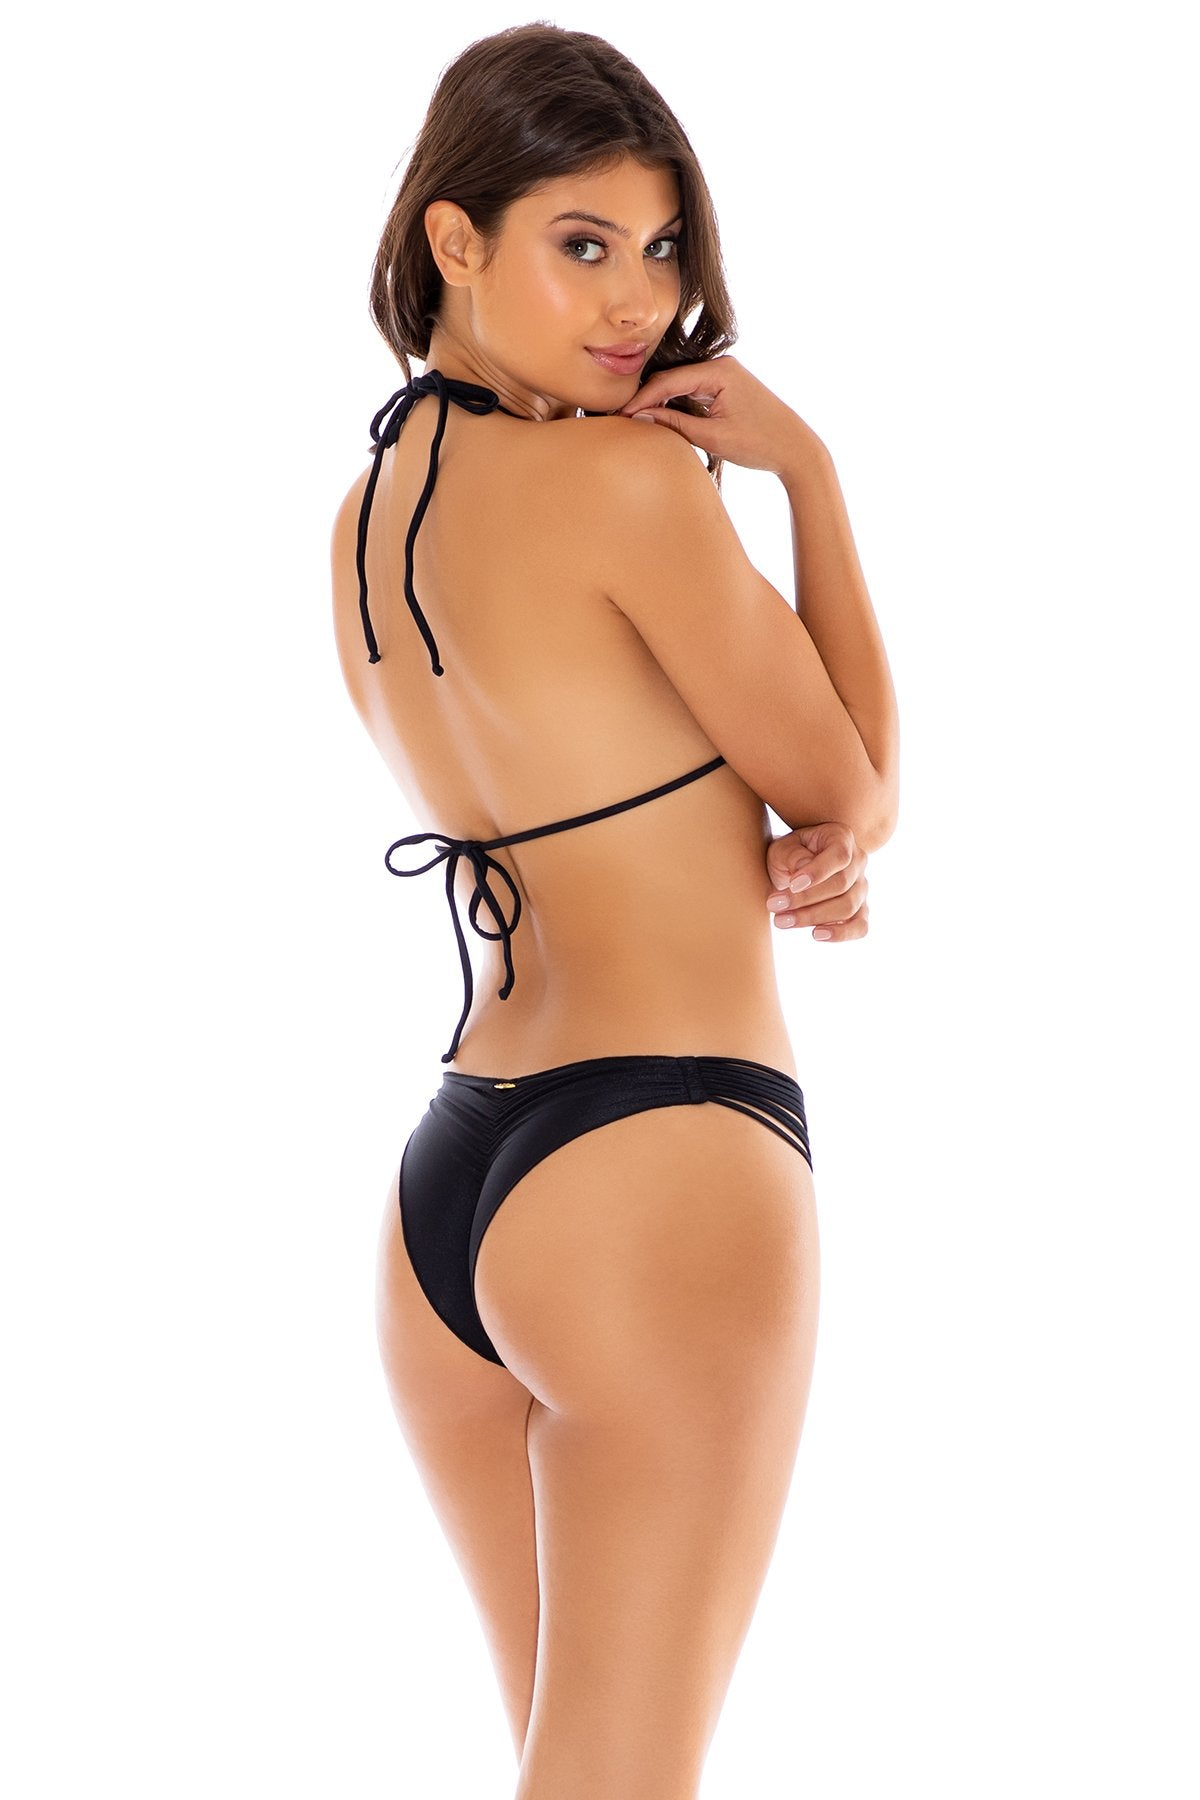 COSITA BUENA - Wavey Triangle Top & Strappy  Ruched Back Bottom • Black